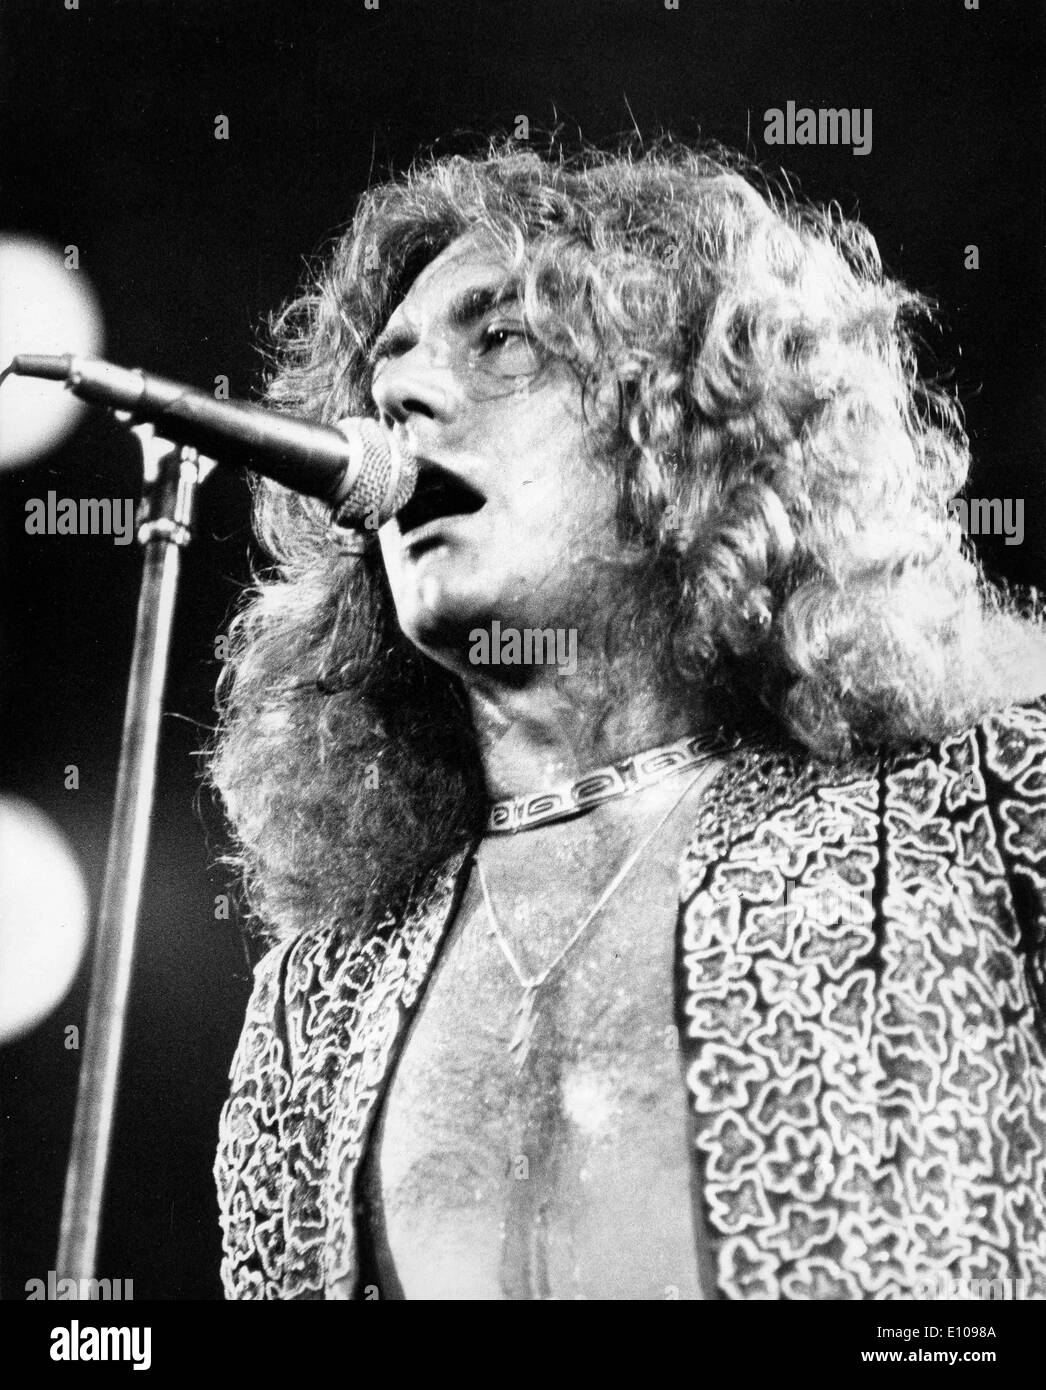 Led zeppelin singer robert plant in concert stock image